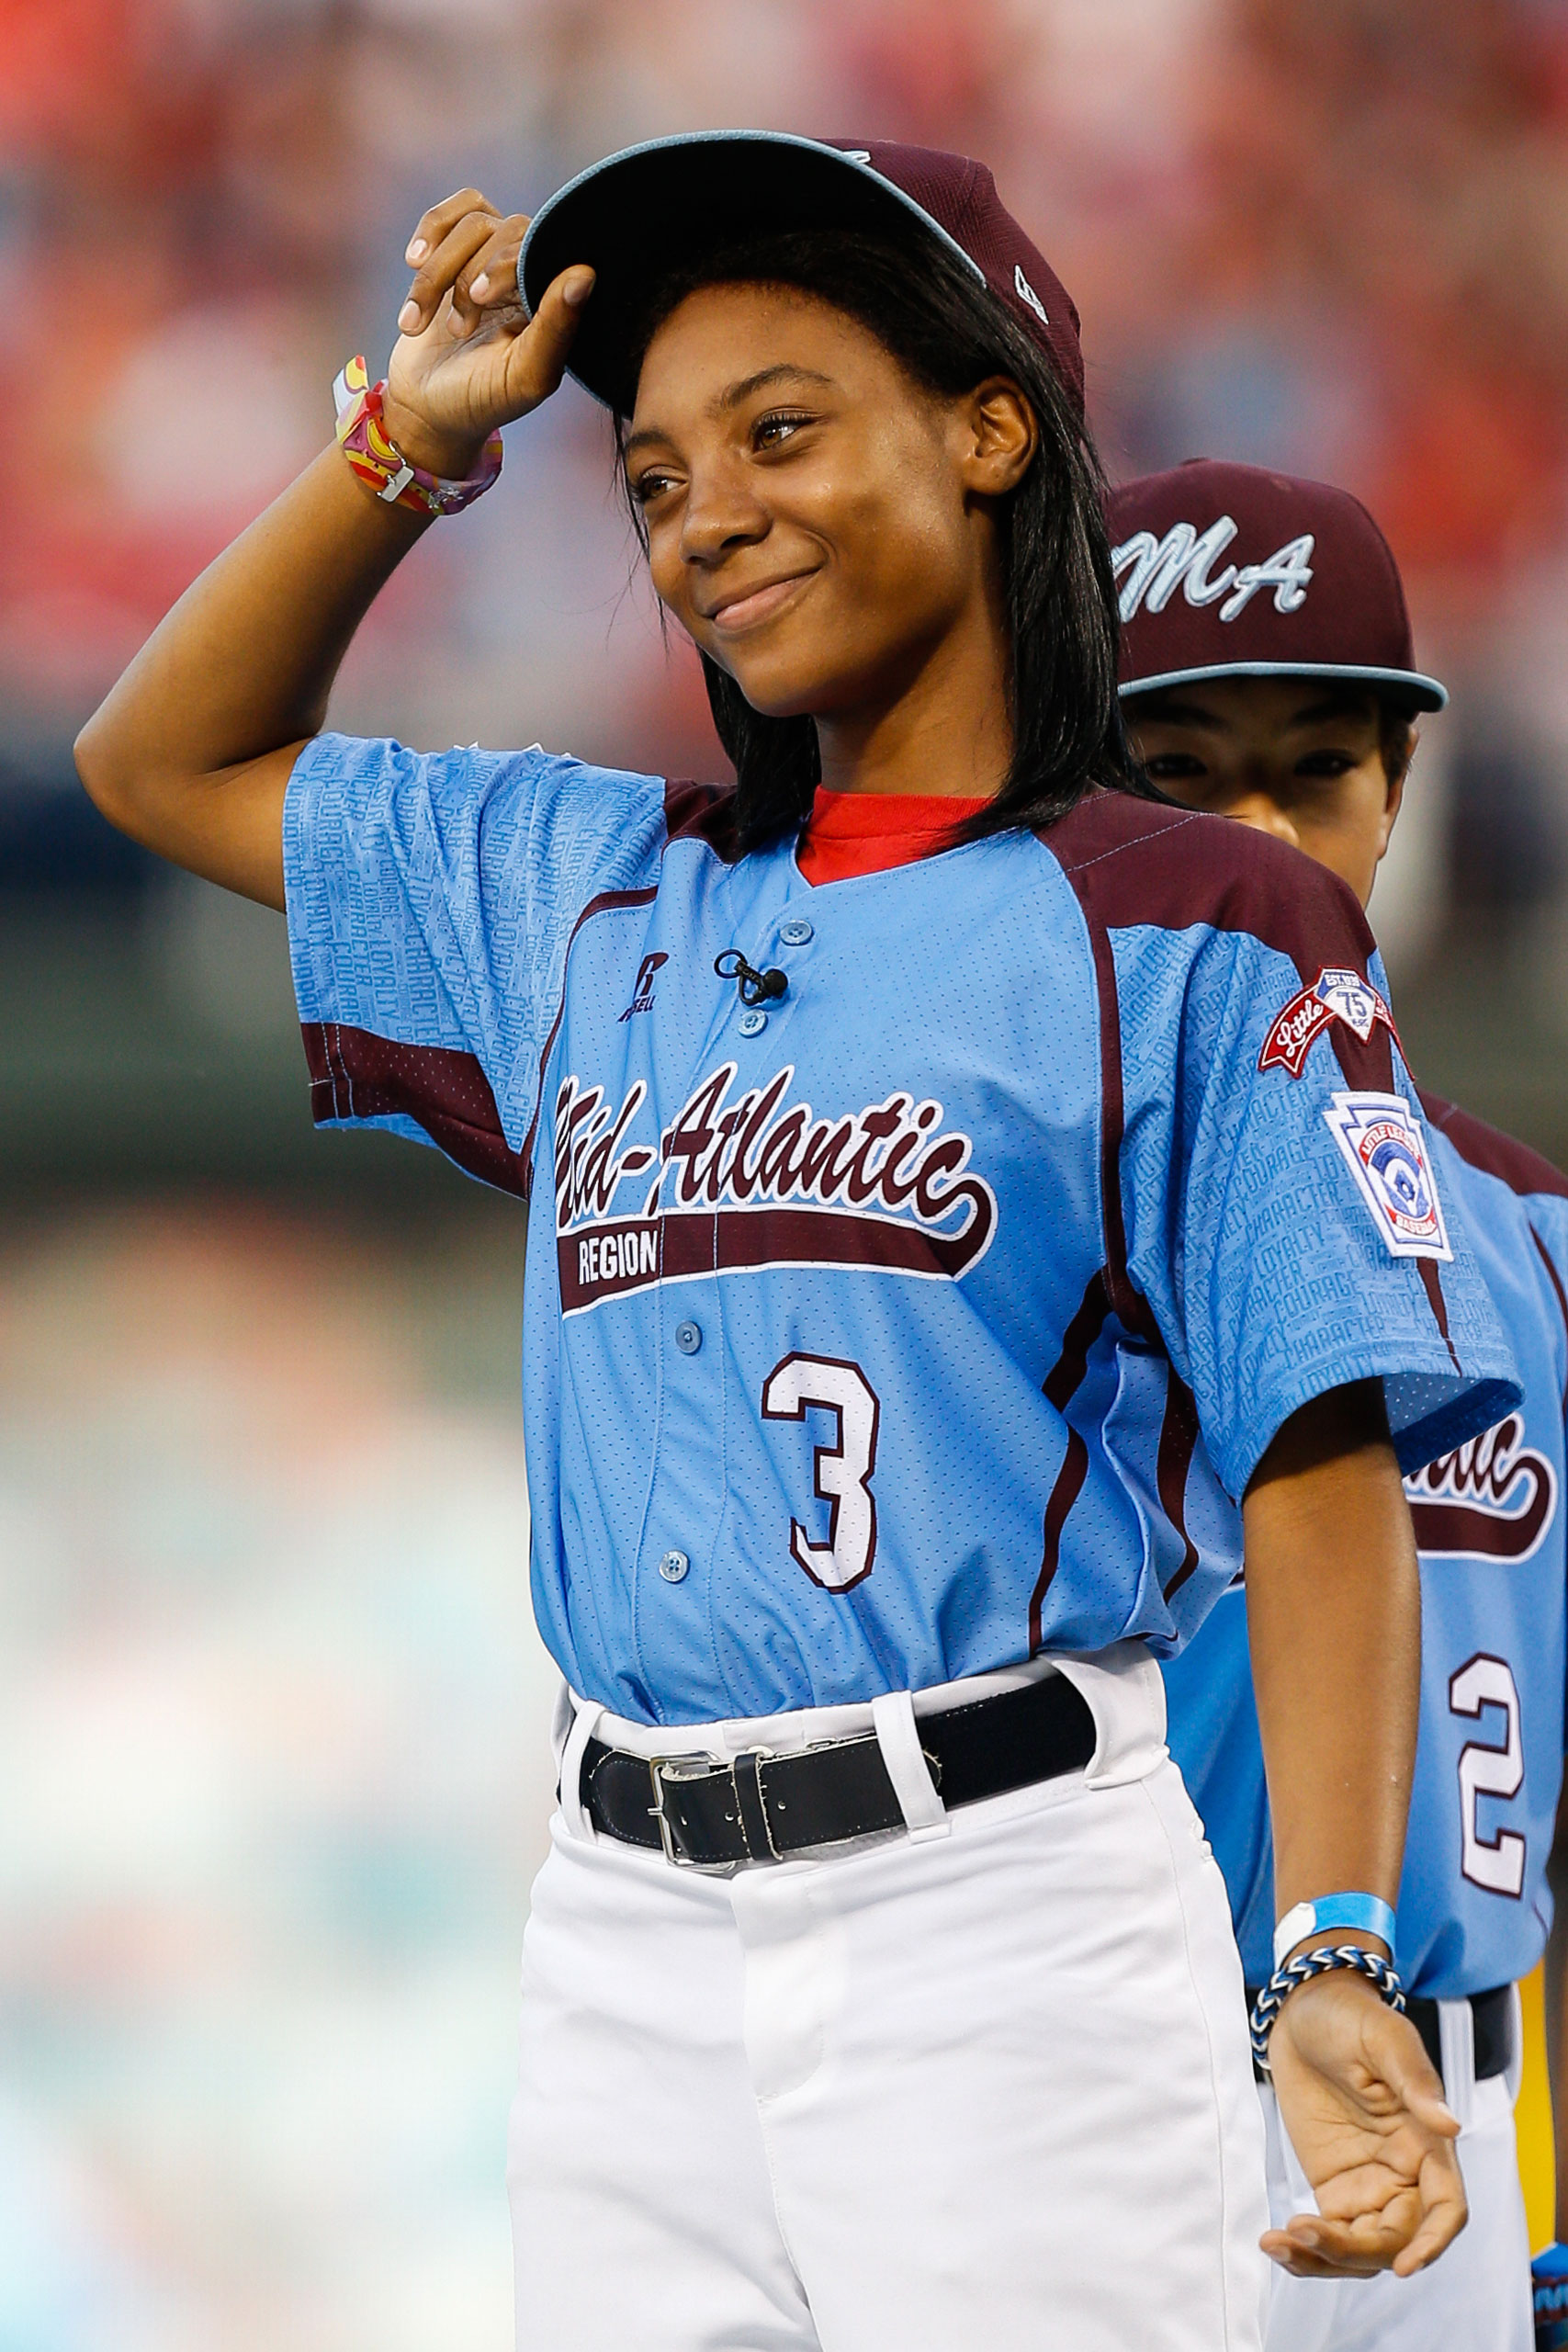 Taney Dragons Pitcher Mo'ne Davis tips her hat as she is introduced and recognized before the game between the Washington Nationals and the Philadelphia Phillies at Citizens Bank Park on Aug. 27, 2014 in Philadelphia